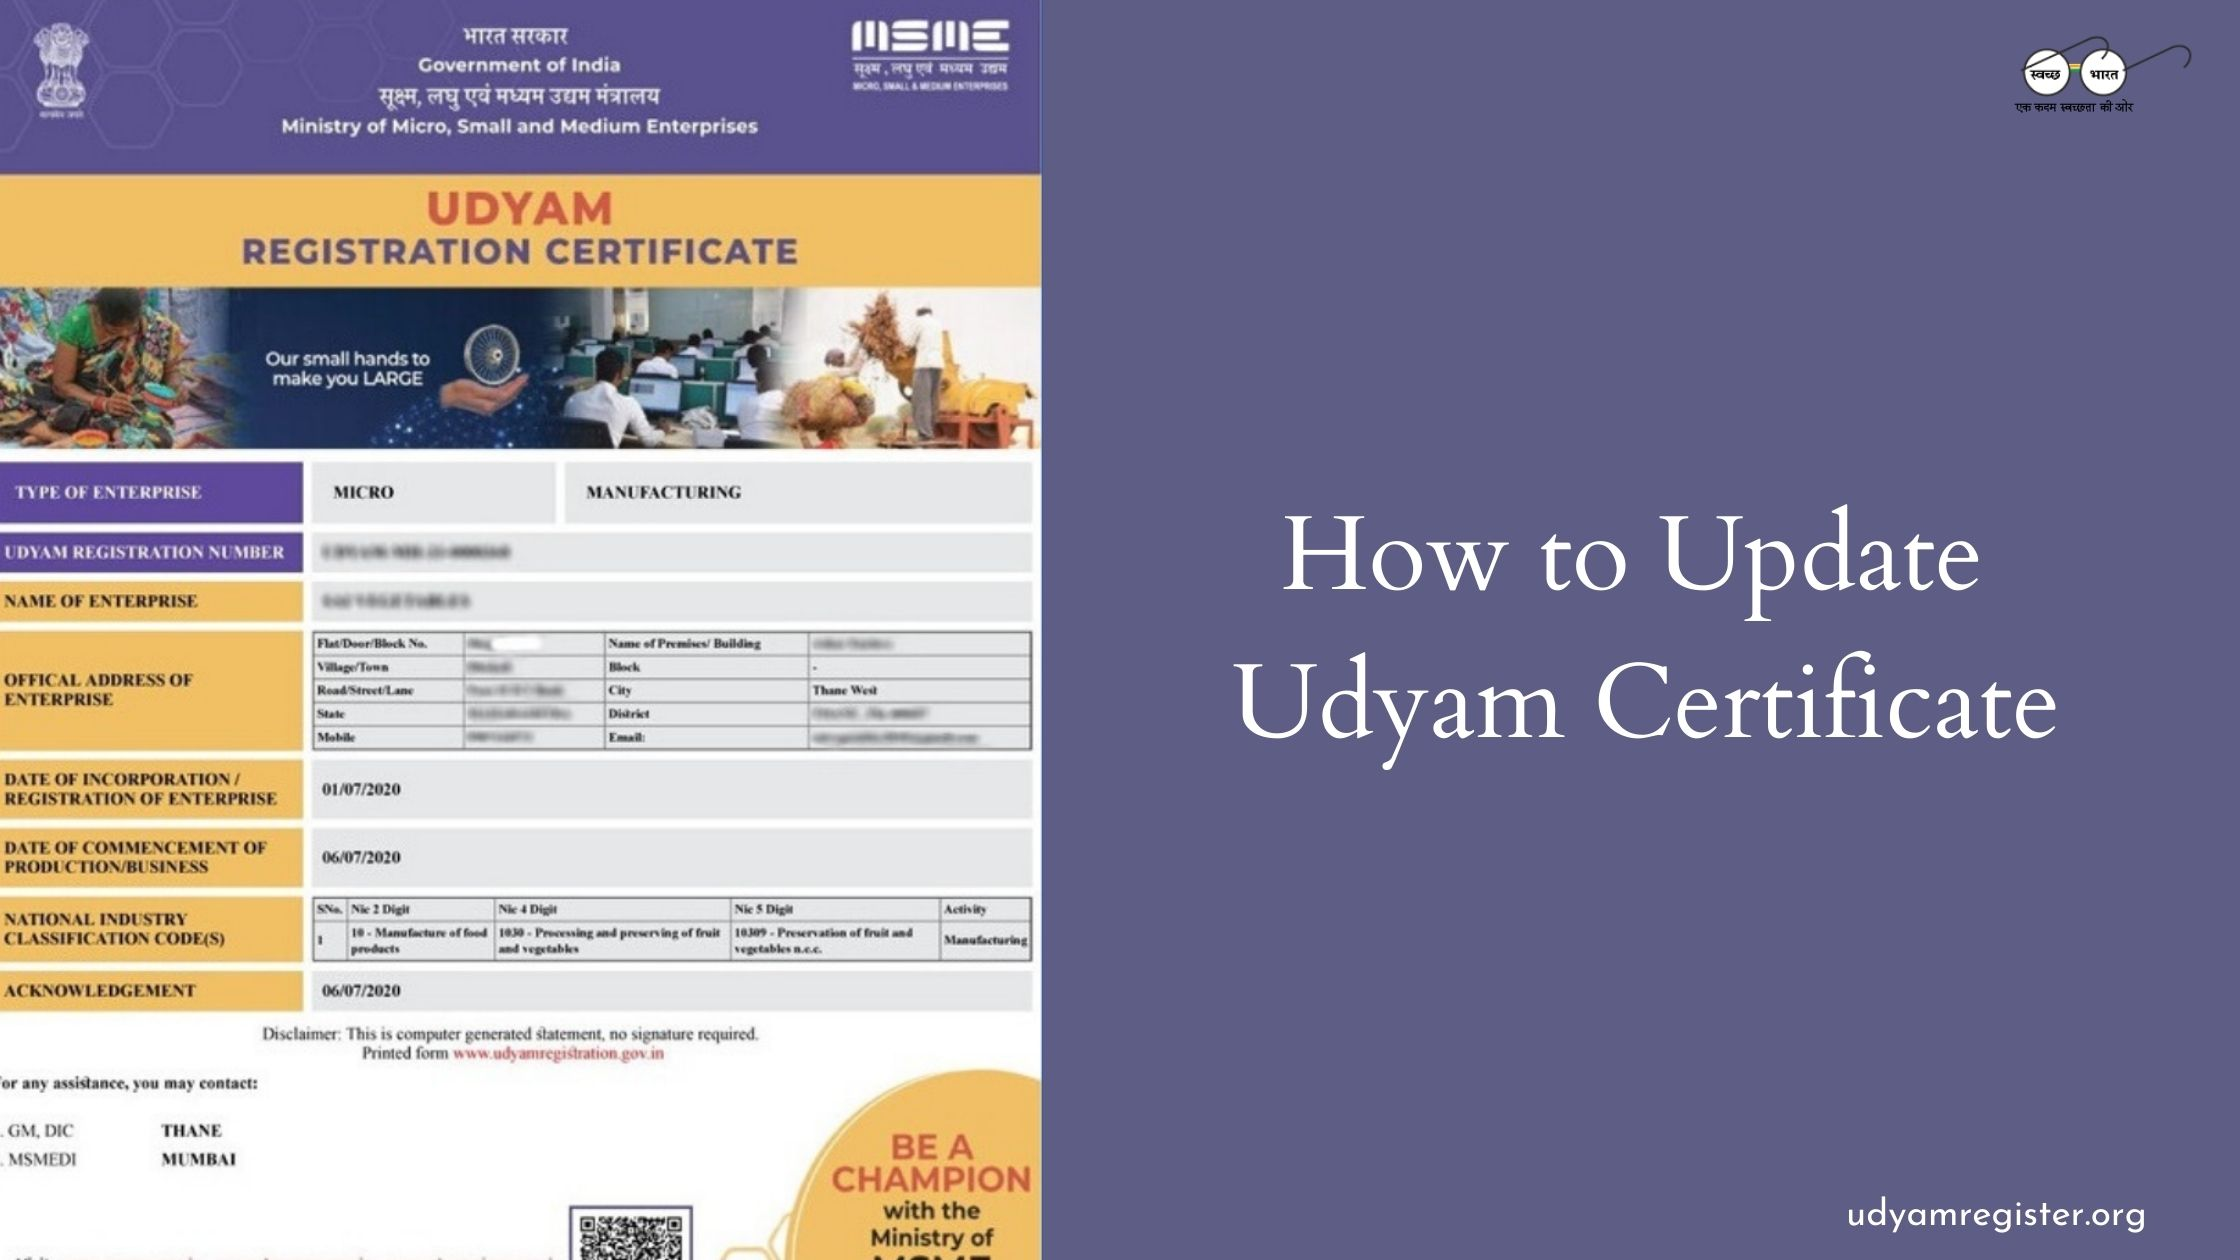 How to Update Udyam Certificate